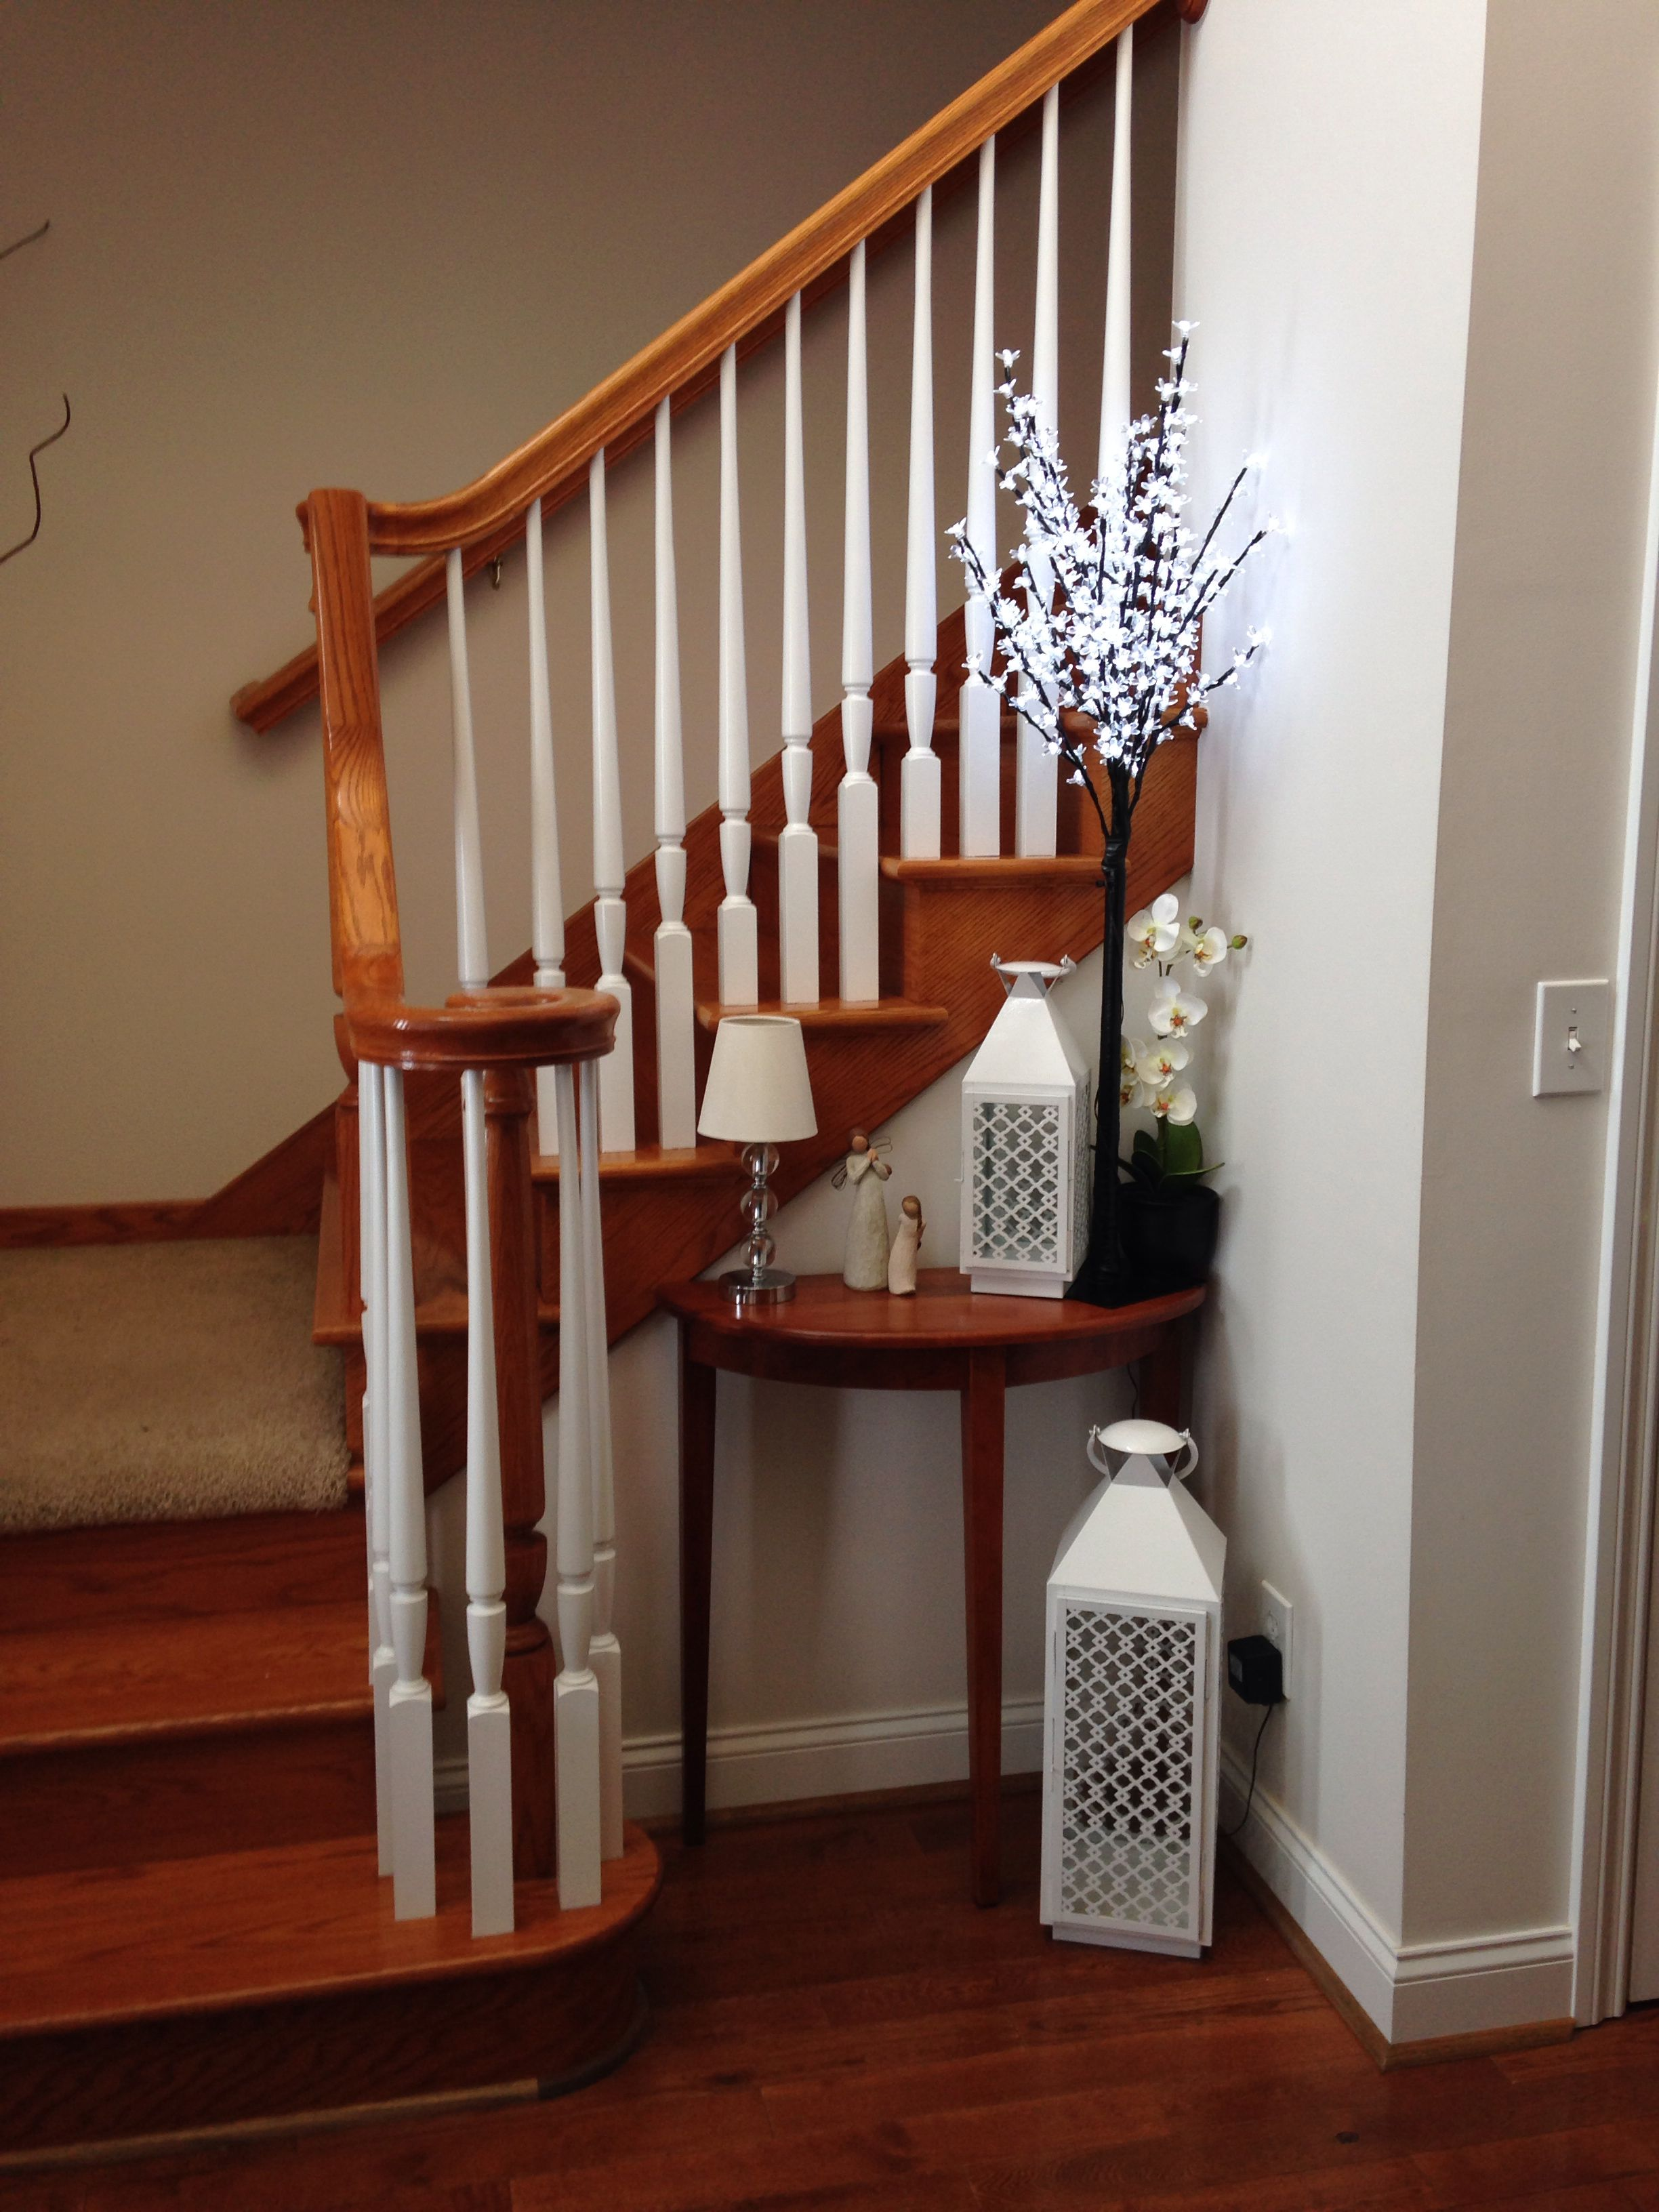 Foyer Decorating Ideas Stairway Decorating Entryway Decoration Stairway